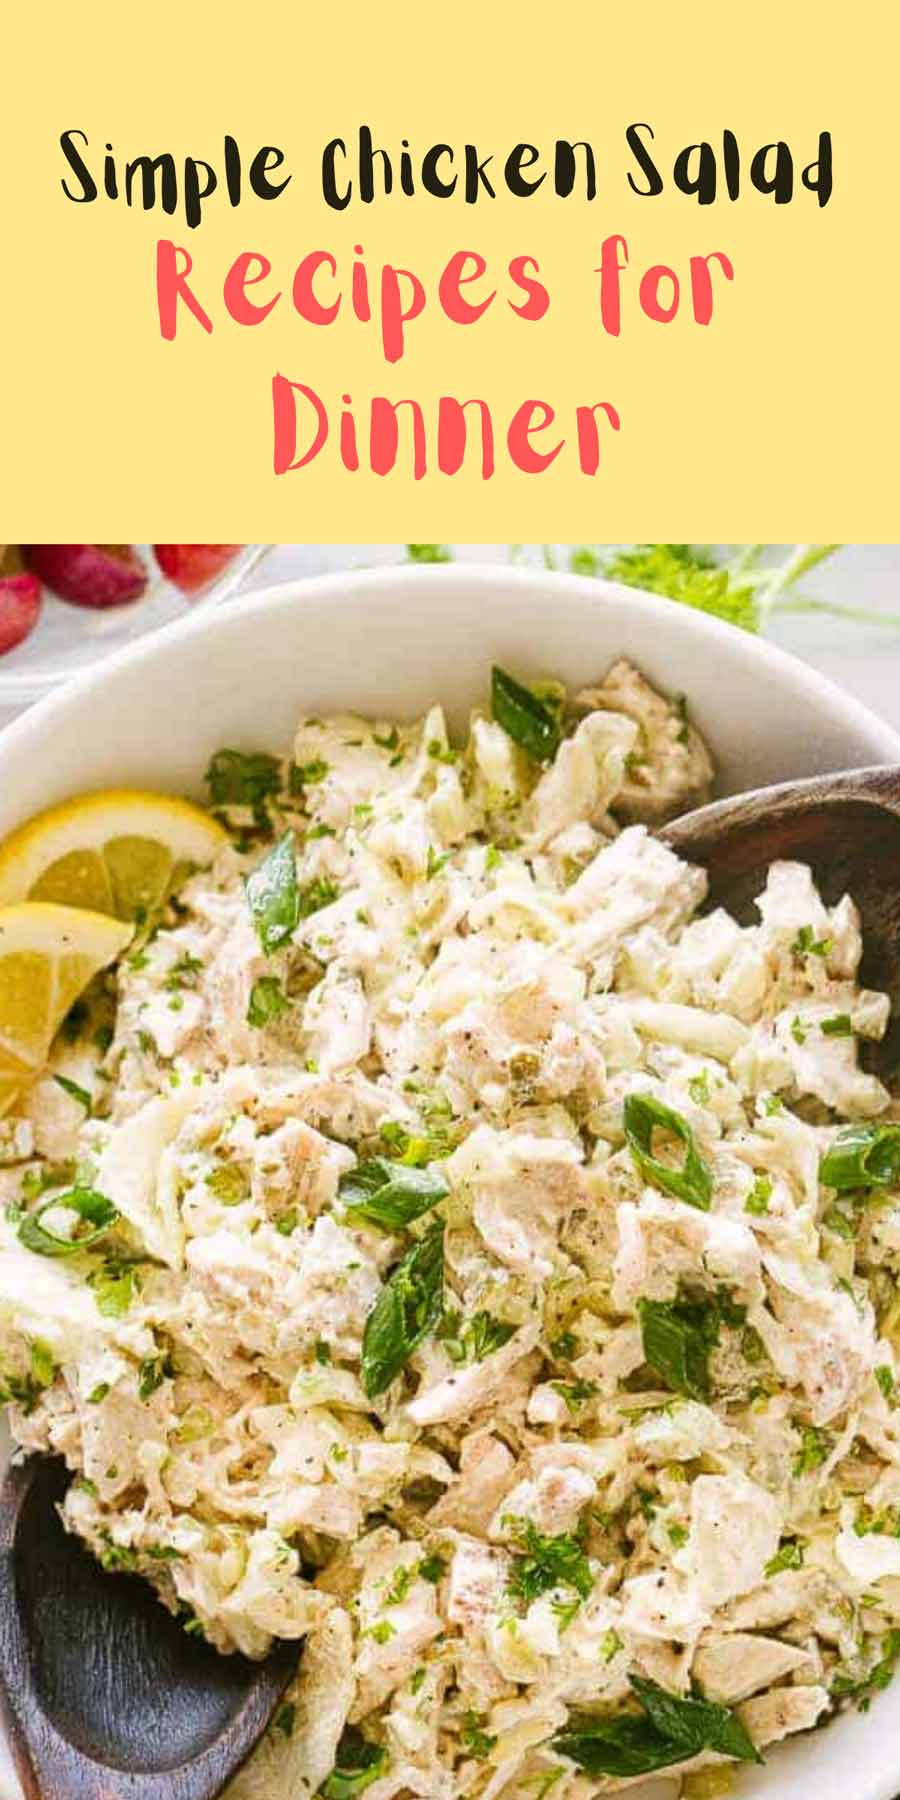 Salad Recipes For Dinner Chicken Simple